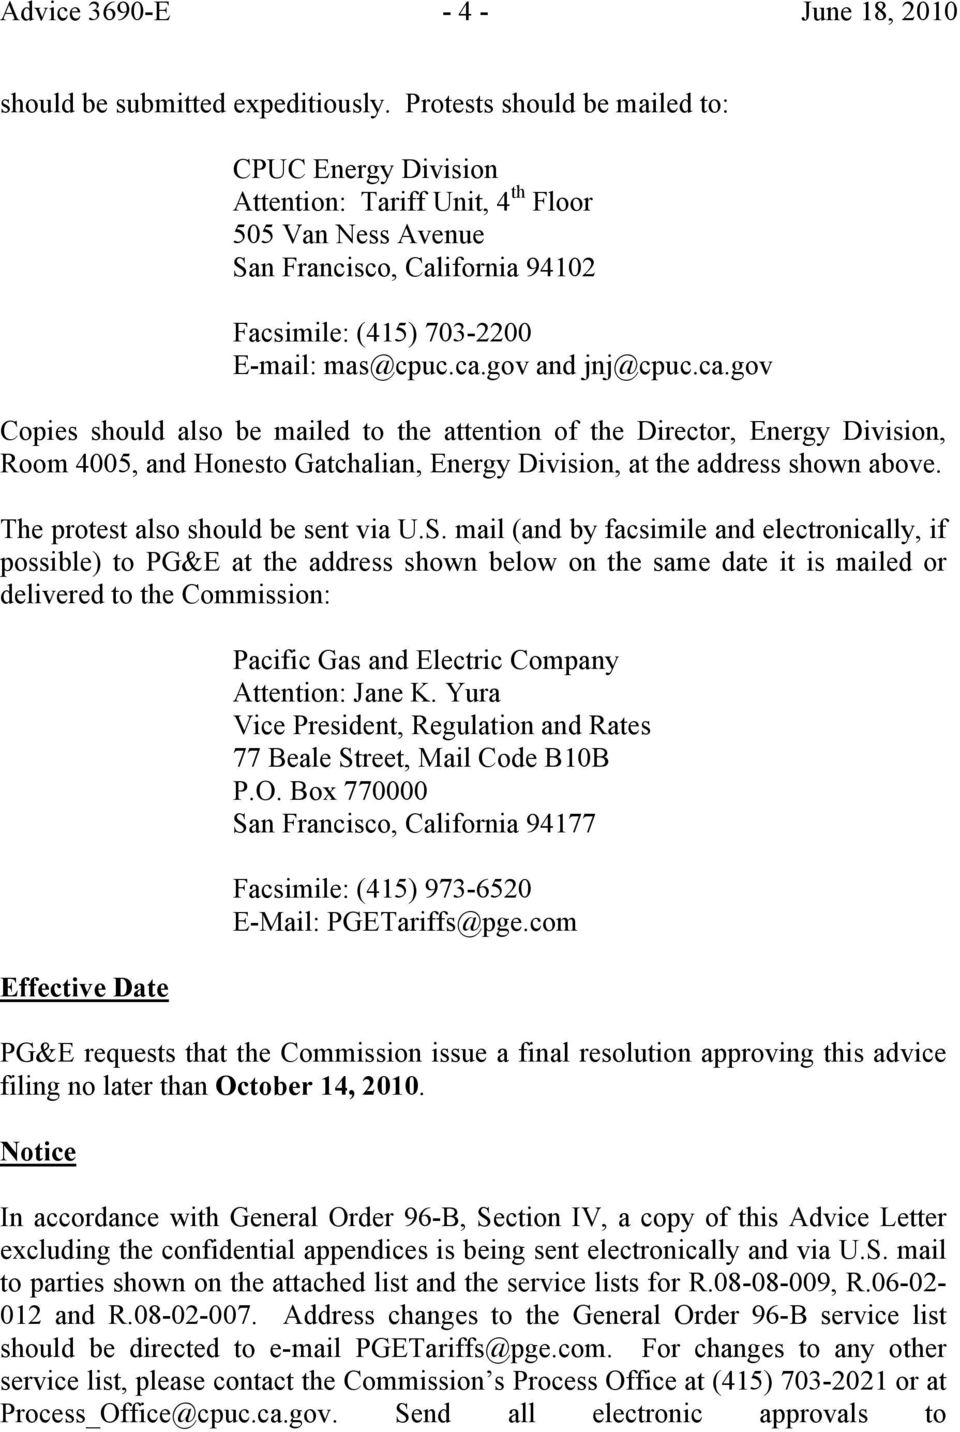 gov and jnj@cpuc.ca.gov Copies should also be mailed to the attention of the Director, Energy Division, Room 4005, and Honesto Gatchalian, Energy Division, at the address shown above.